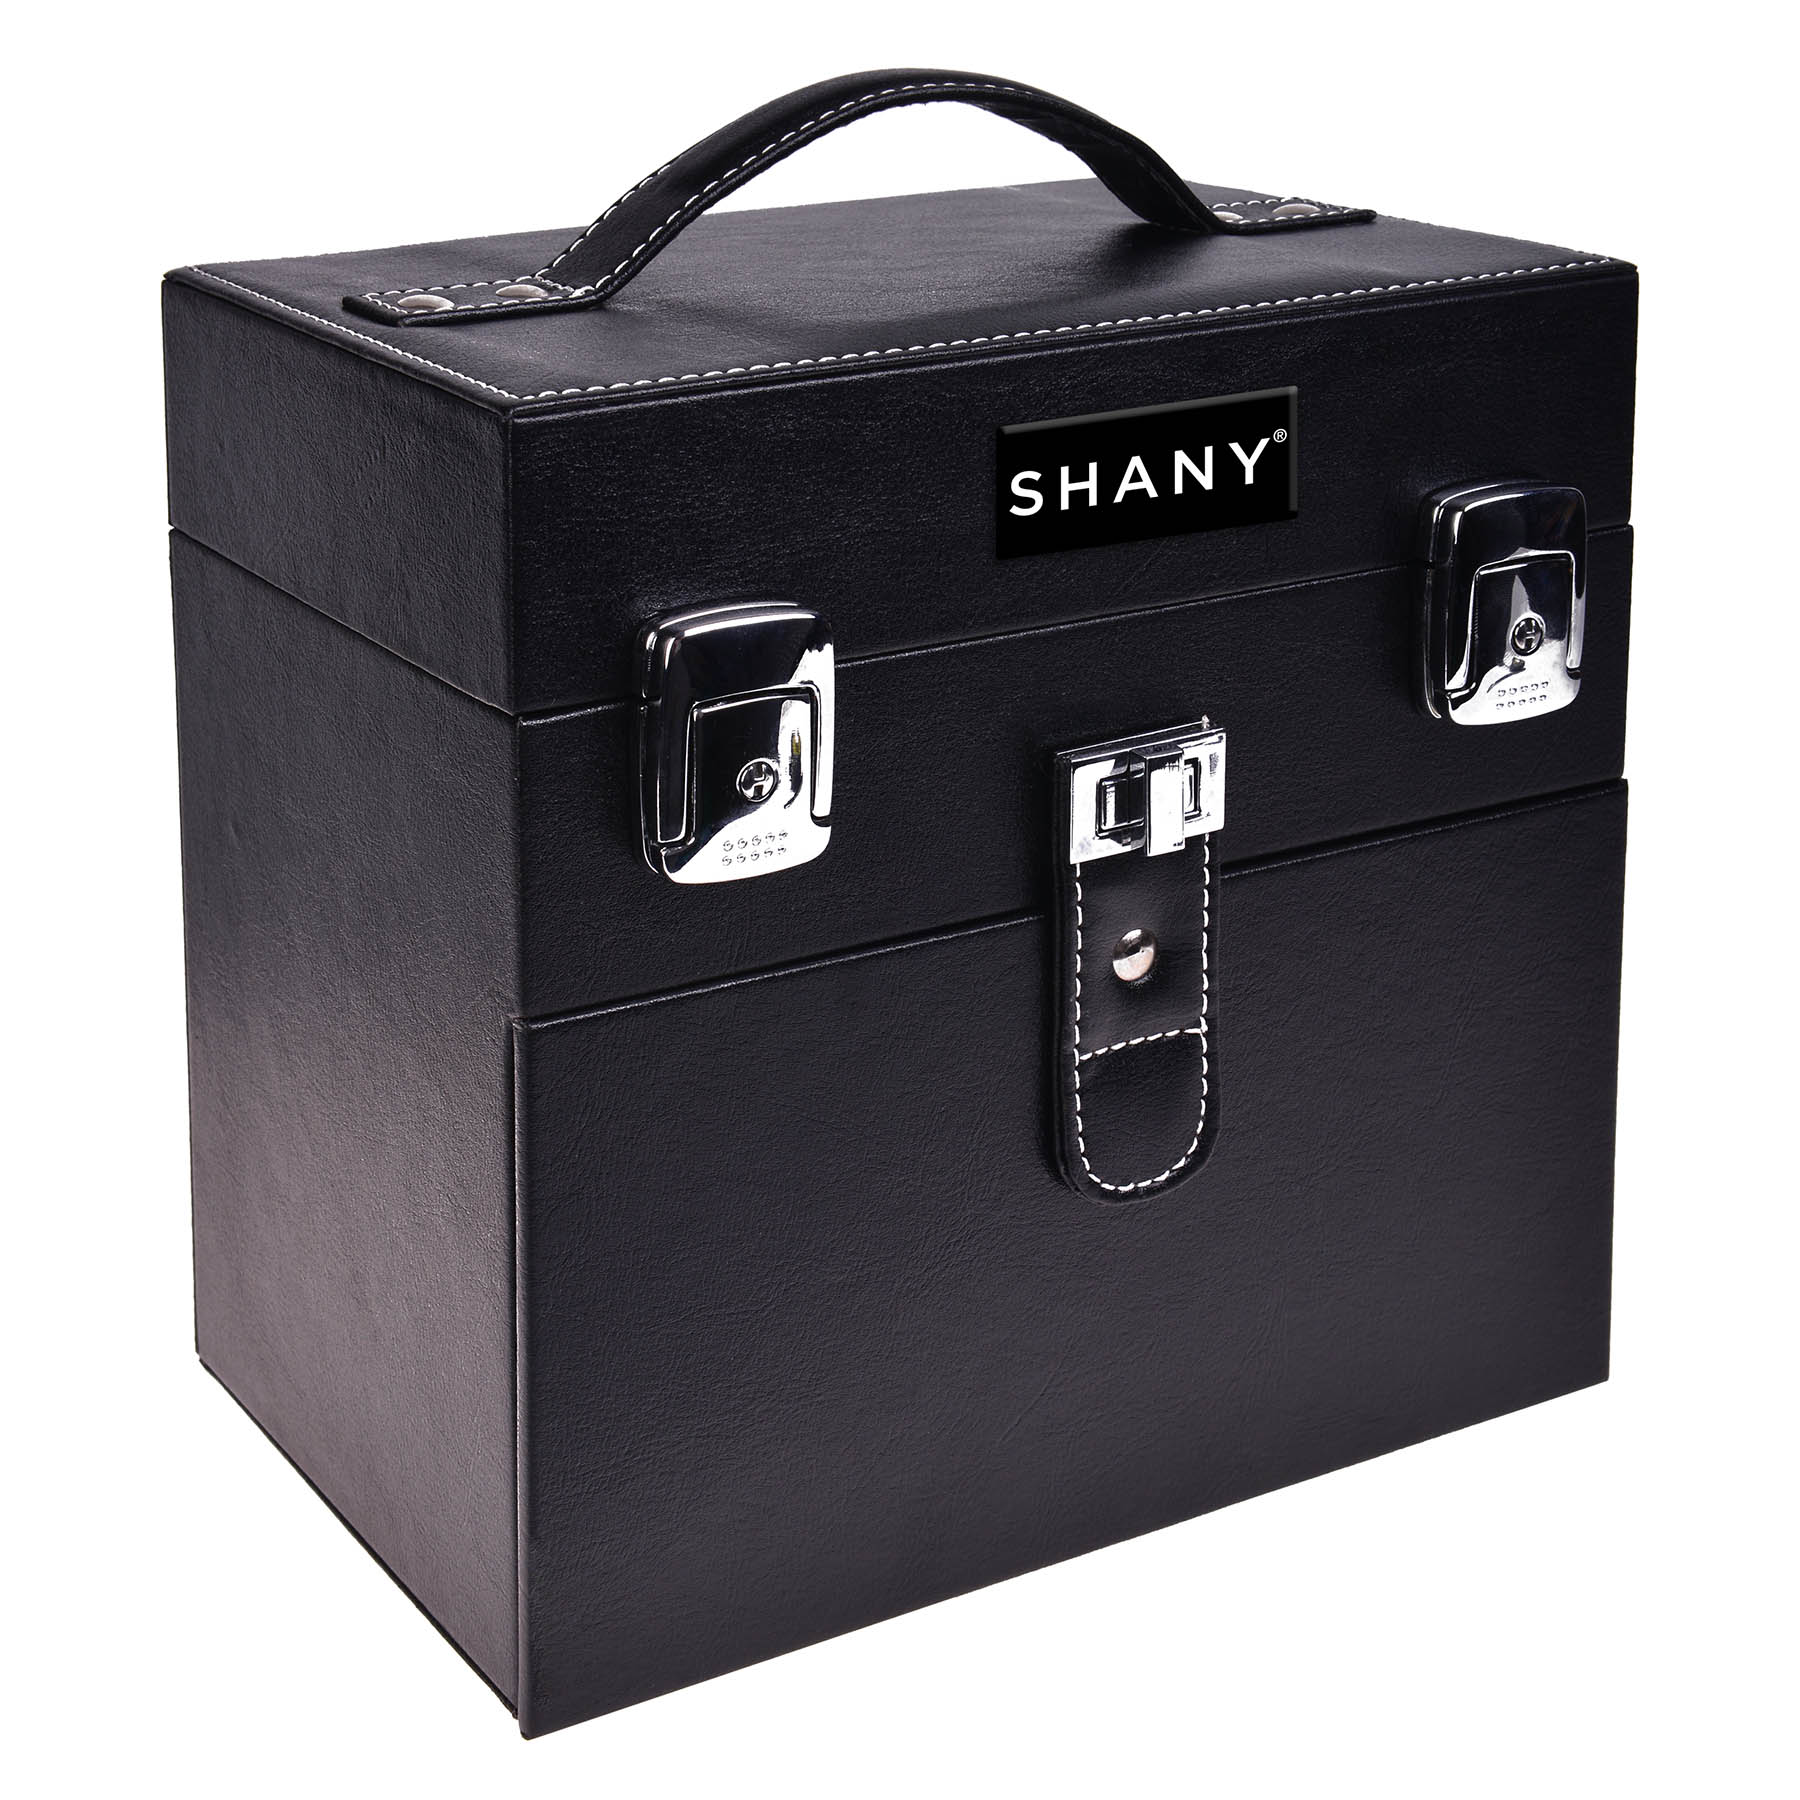 SHANY-Color-Matters-Nail-Accessories-Organizer-and-Makeup-Train-Case miniature 32